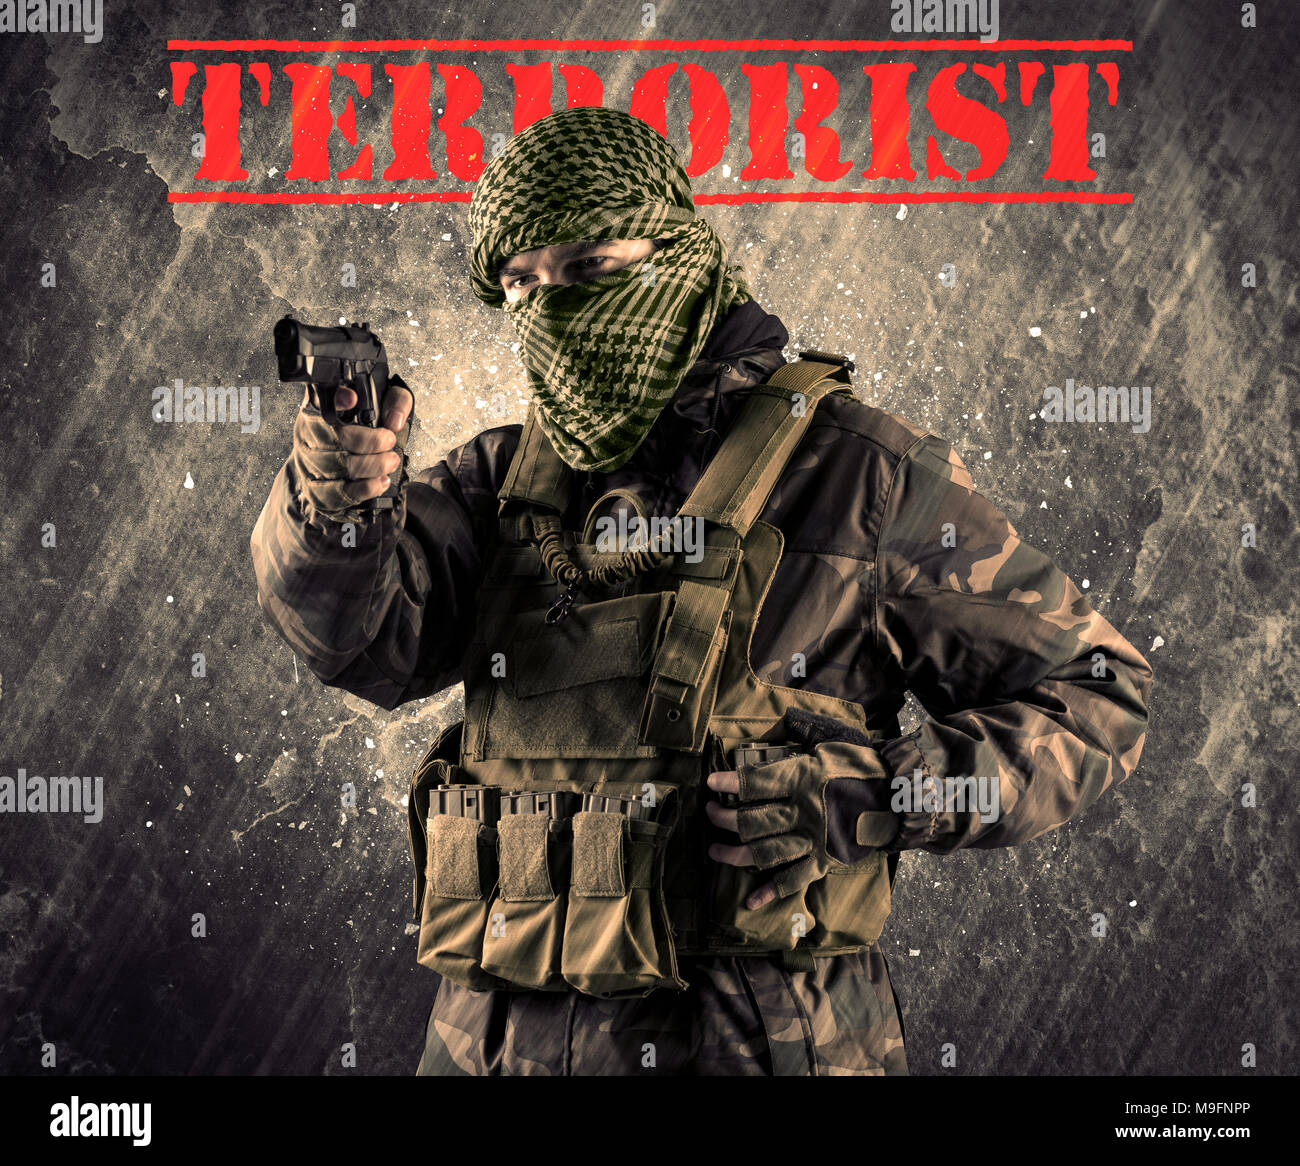 Portrait of dangerous masked and armed man with terrorist sign on grungy background - Stock Image